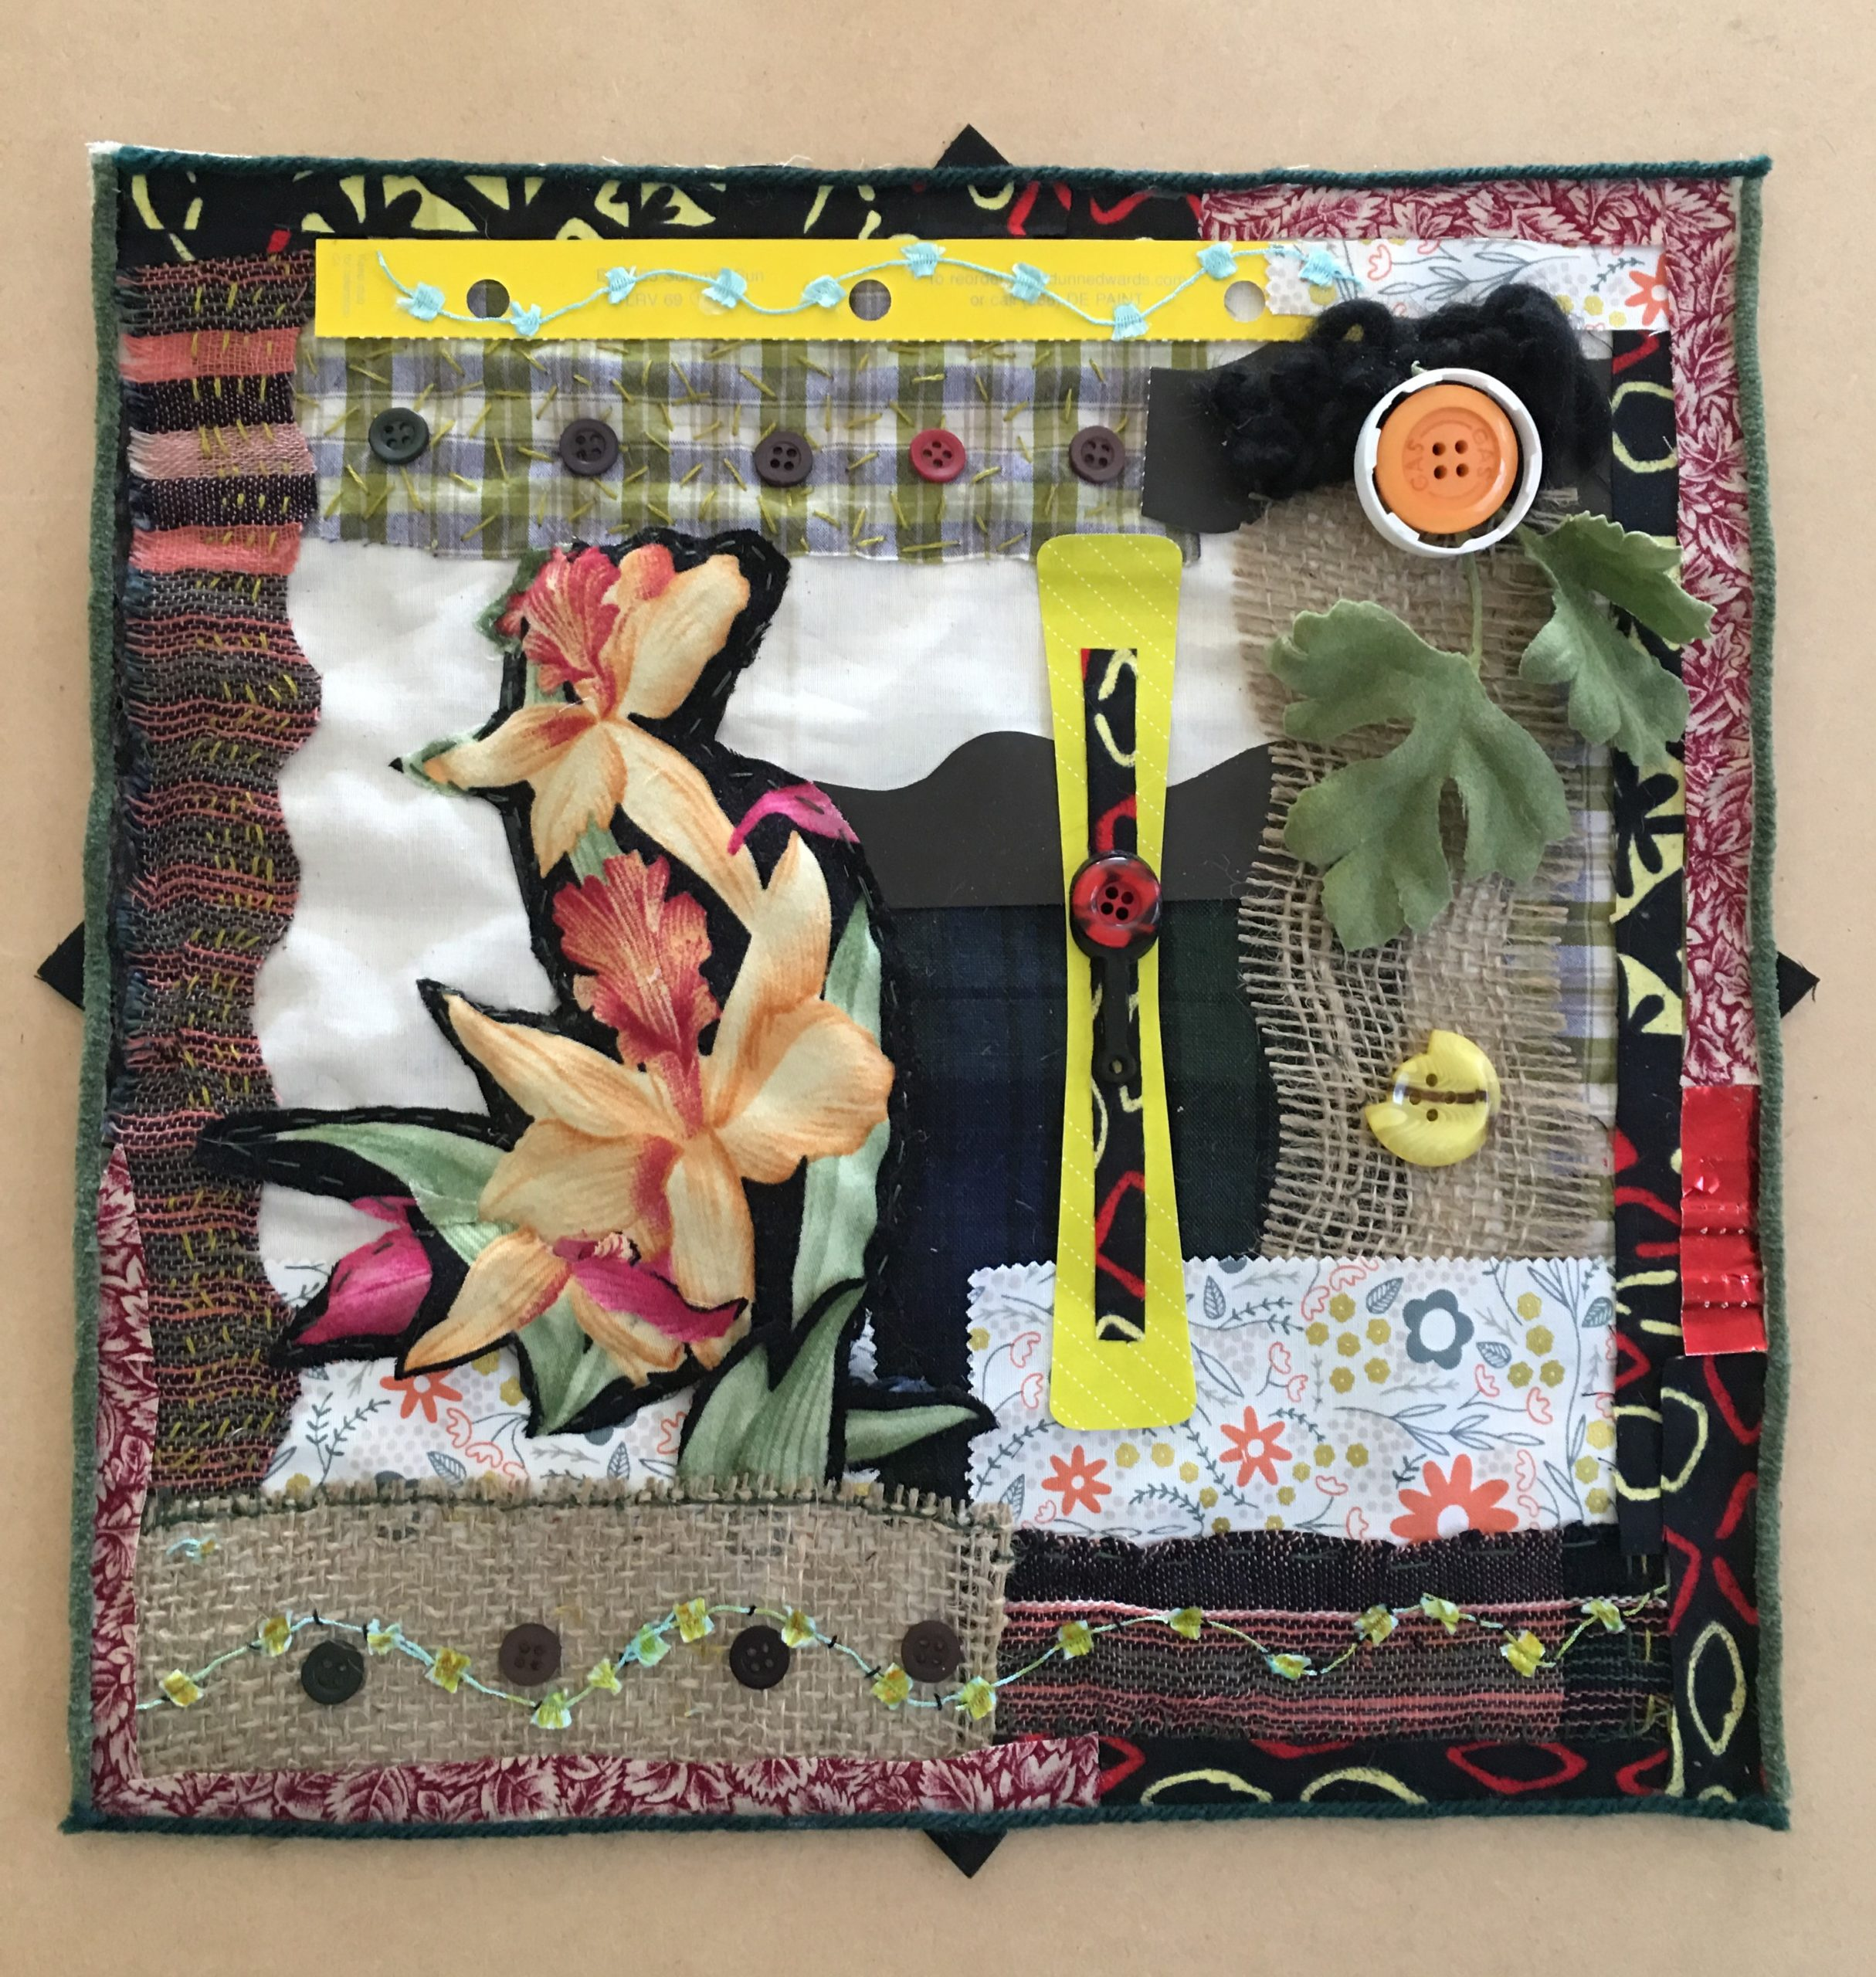 Orchid Fabric Collage, Fabric and items from workshop participants, Craft Contemporary